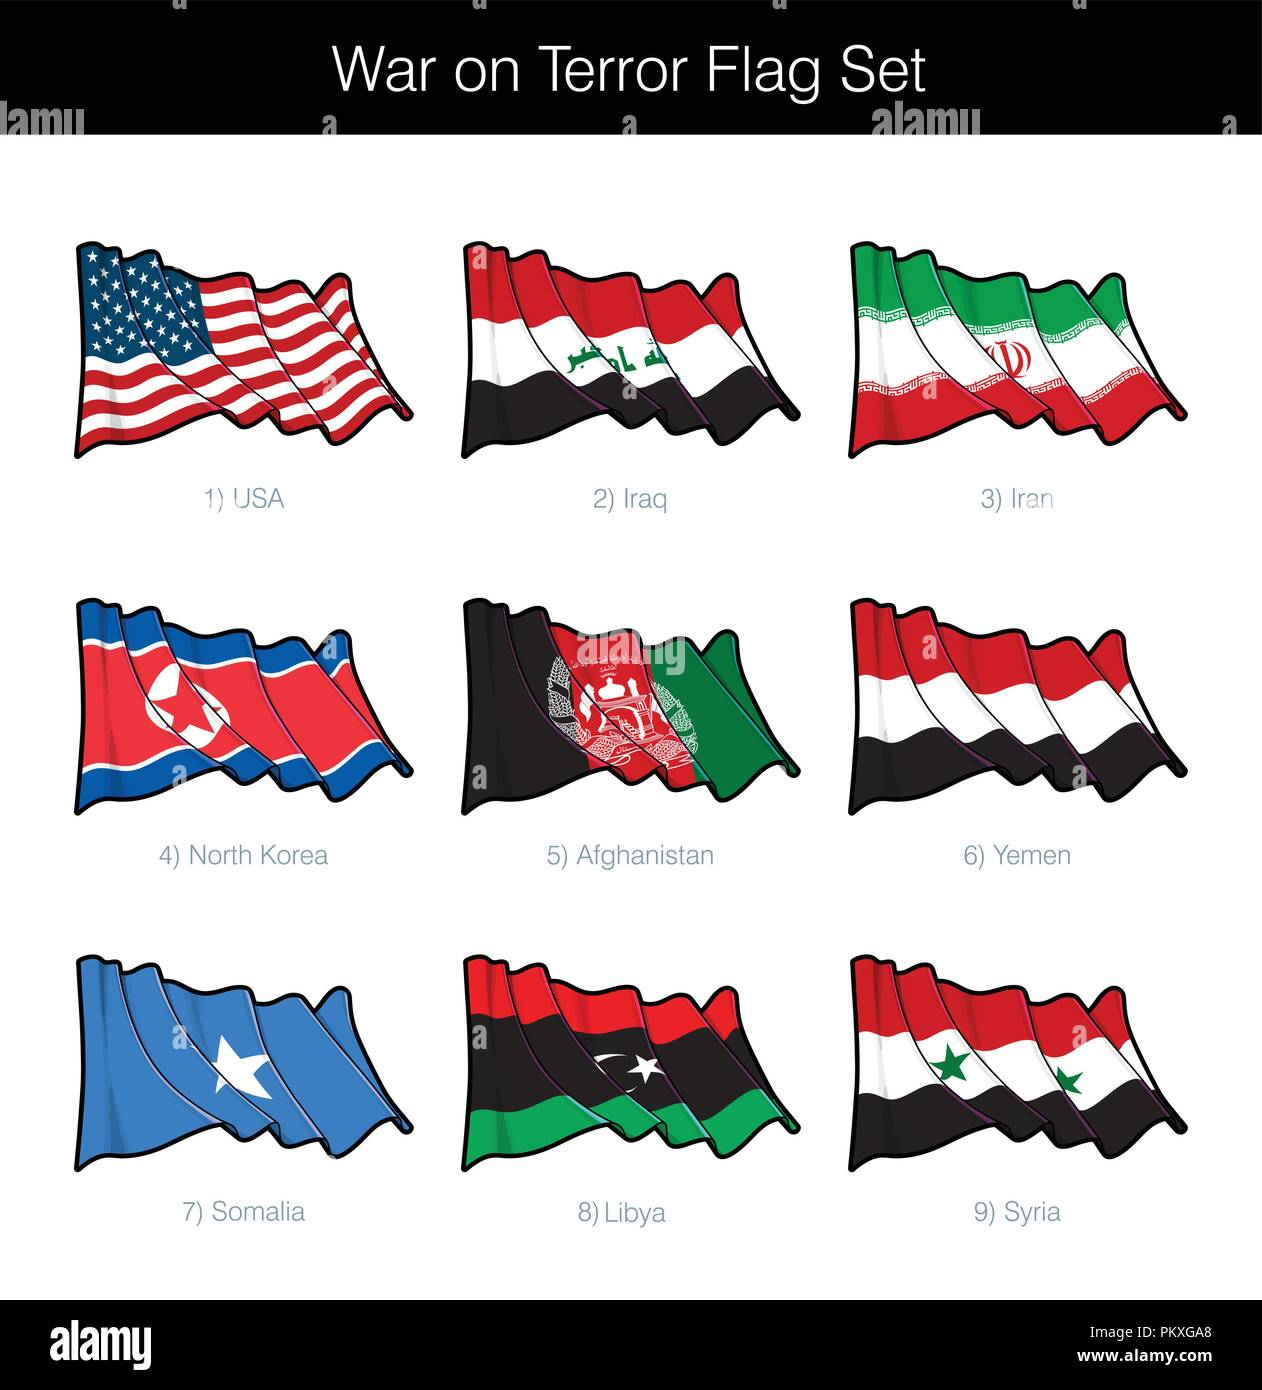 War on Terror Waving Flag Set. The set includes the flags of USA, Iraq, Iran, North Korea, Afghanistan, Yemen, Somalia, Libya and Syria. Vector Icons  - Stock Vector